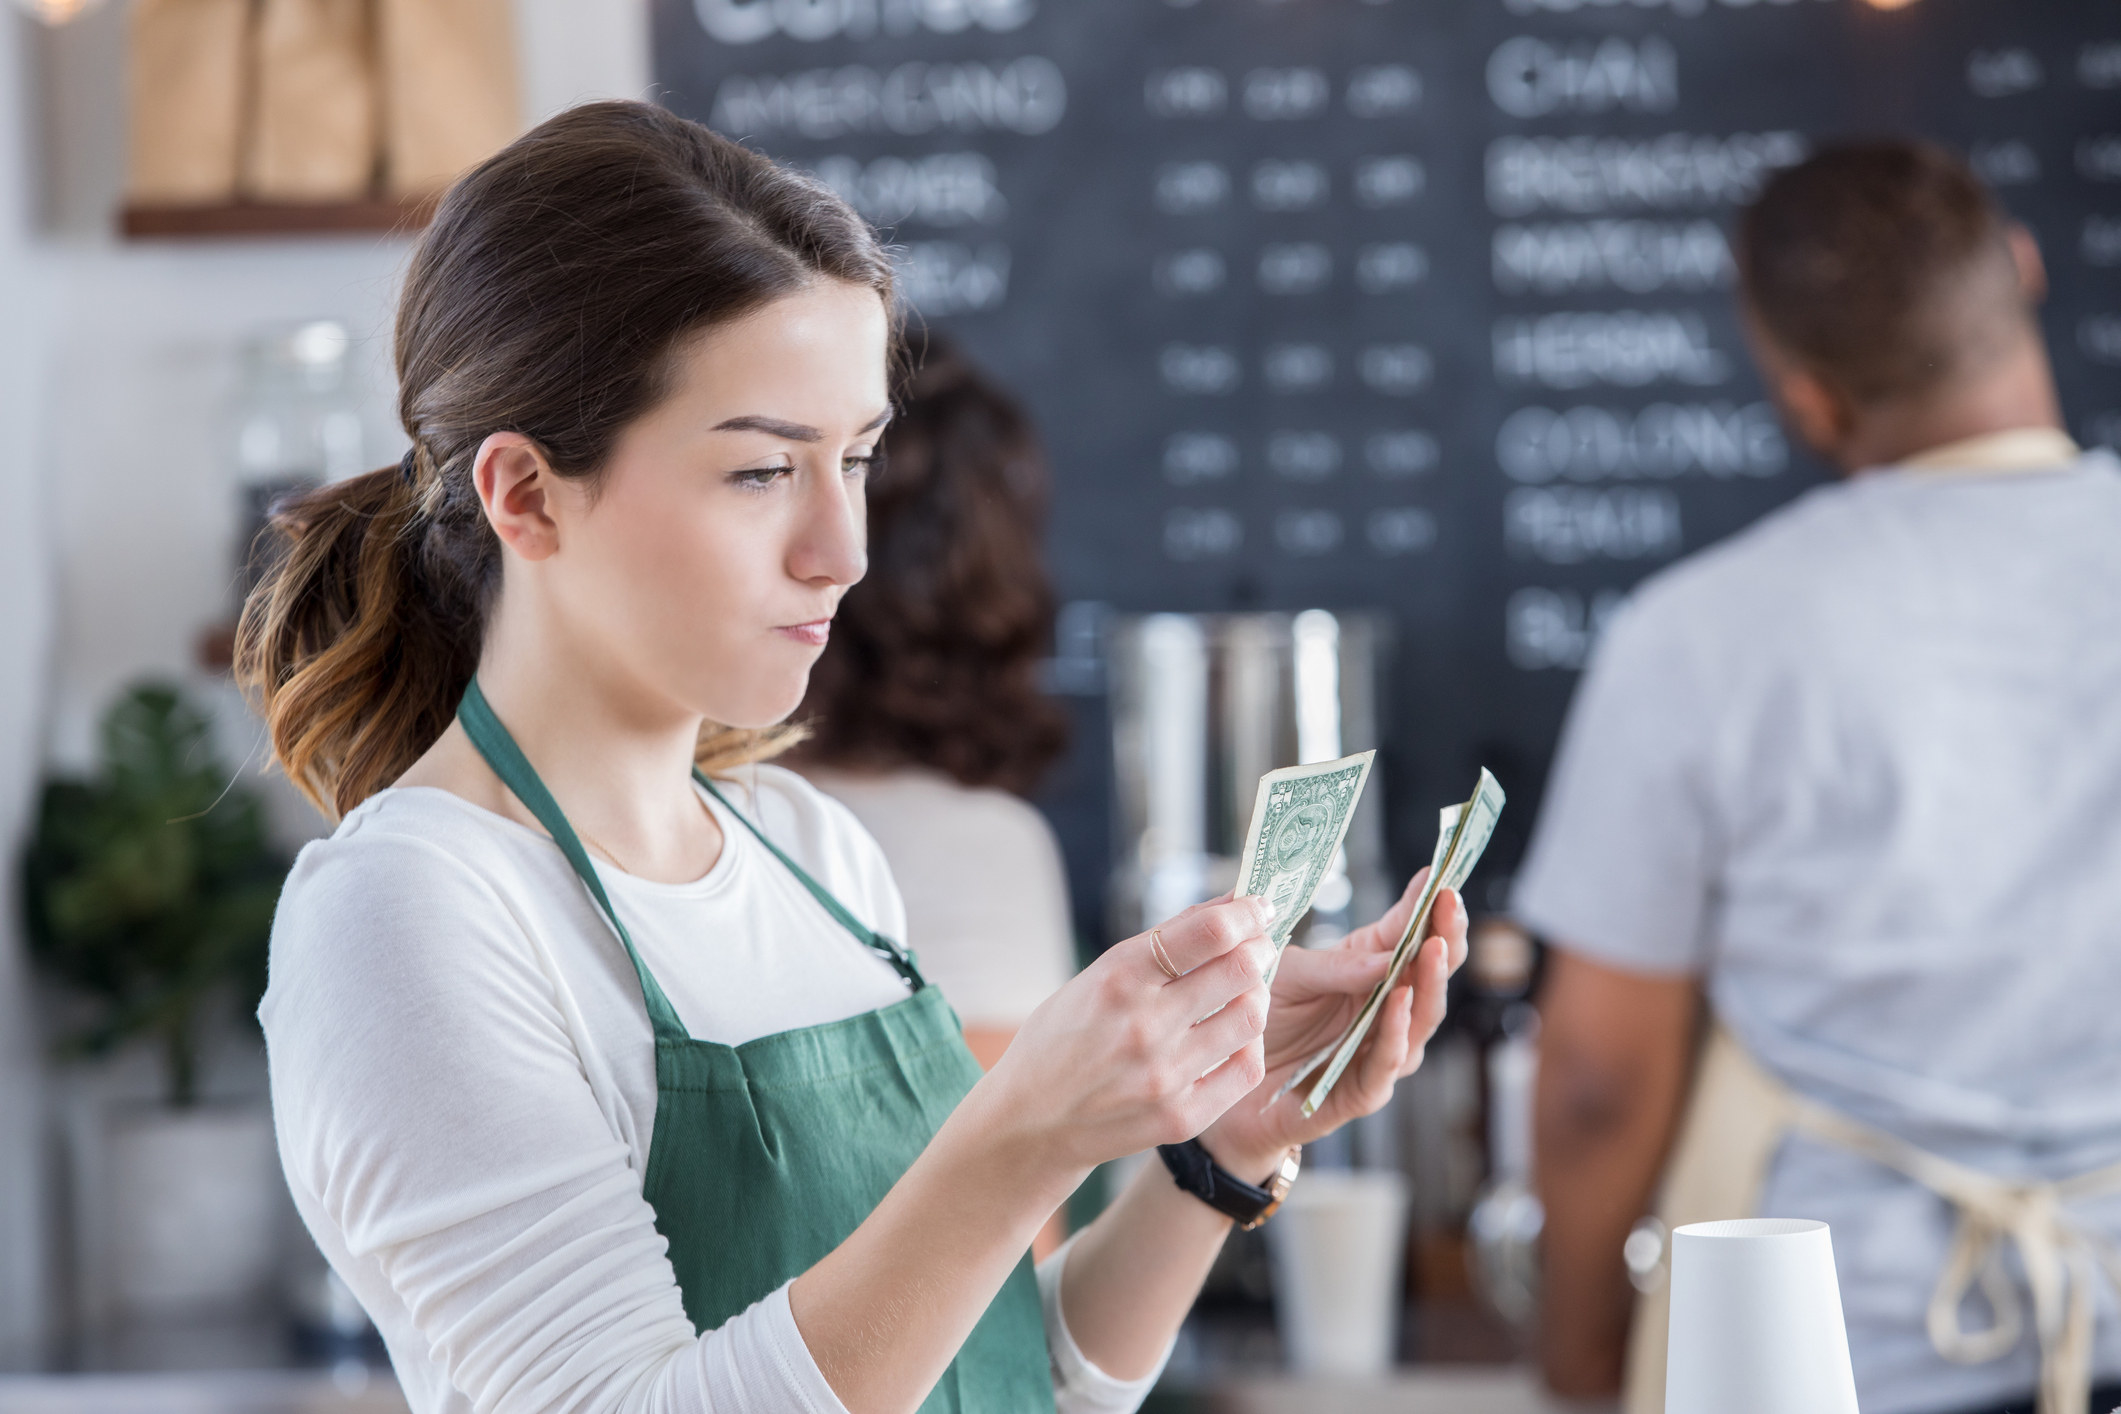 Barista has a disappointed expression on her face as she counts her tips at the end of the day